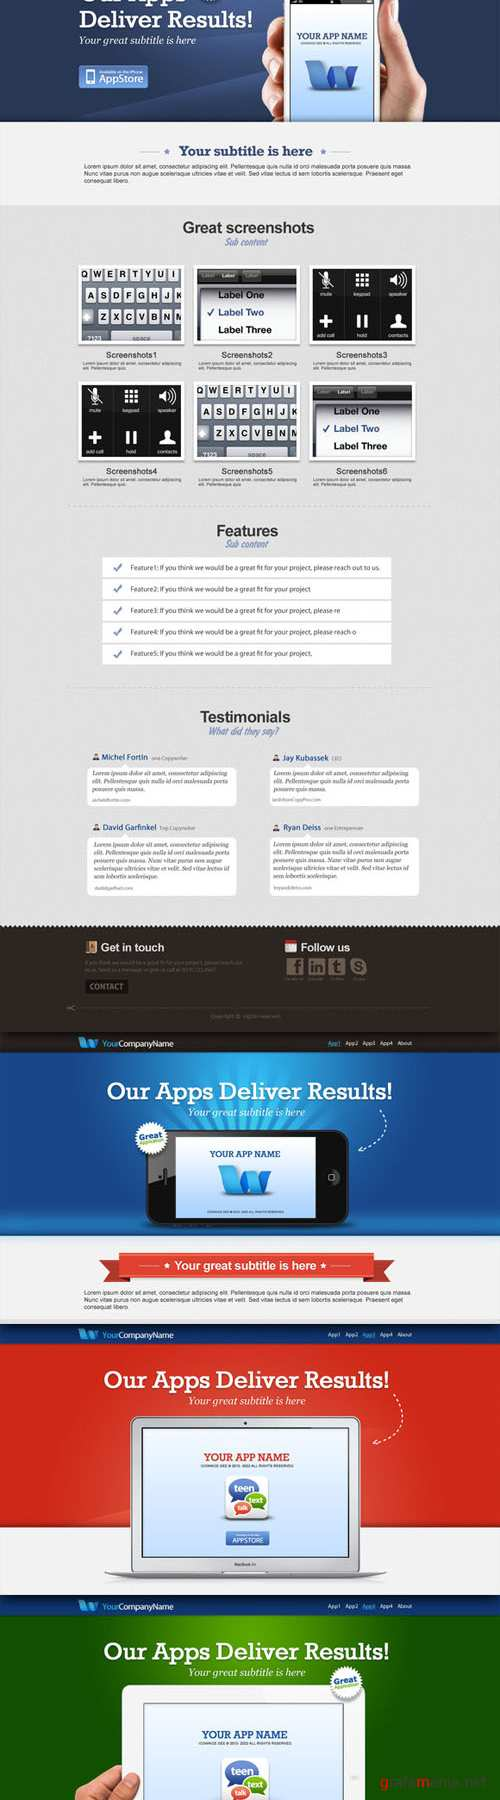 CreativeMarket - Concise deliver results apps collect